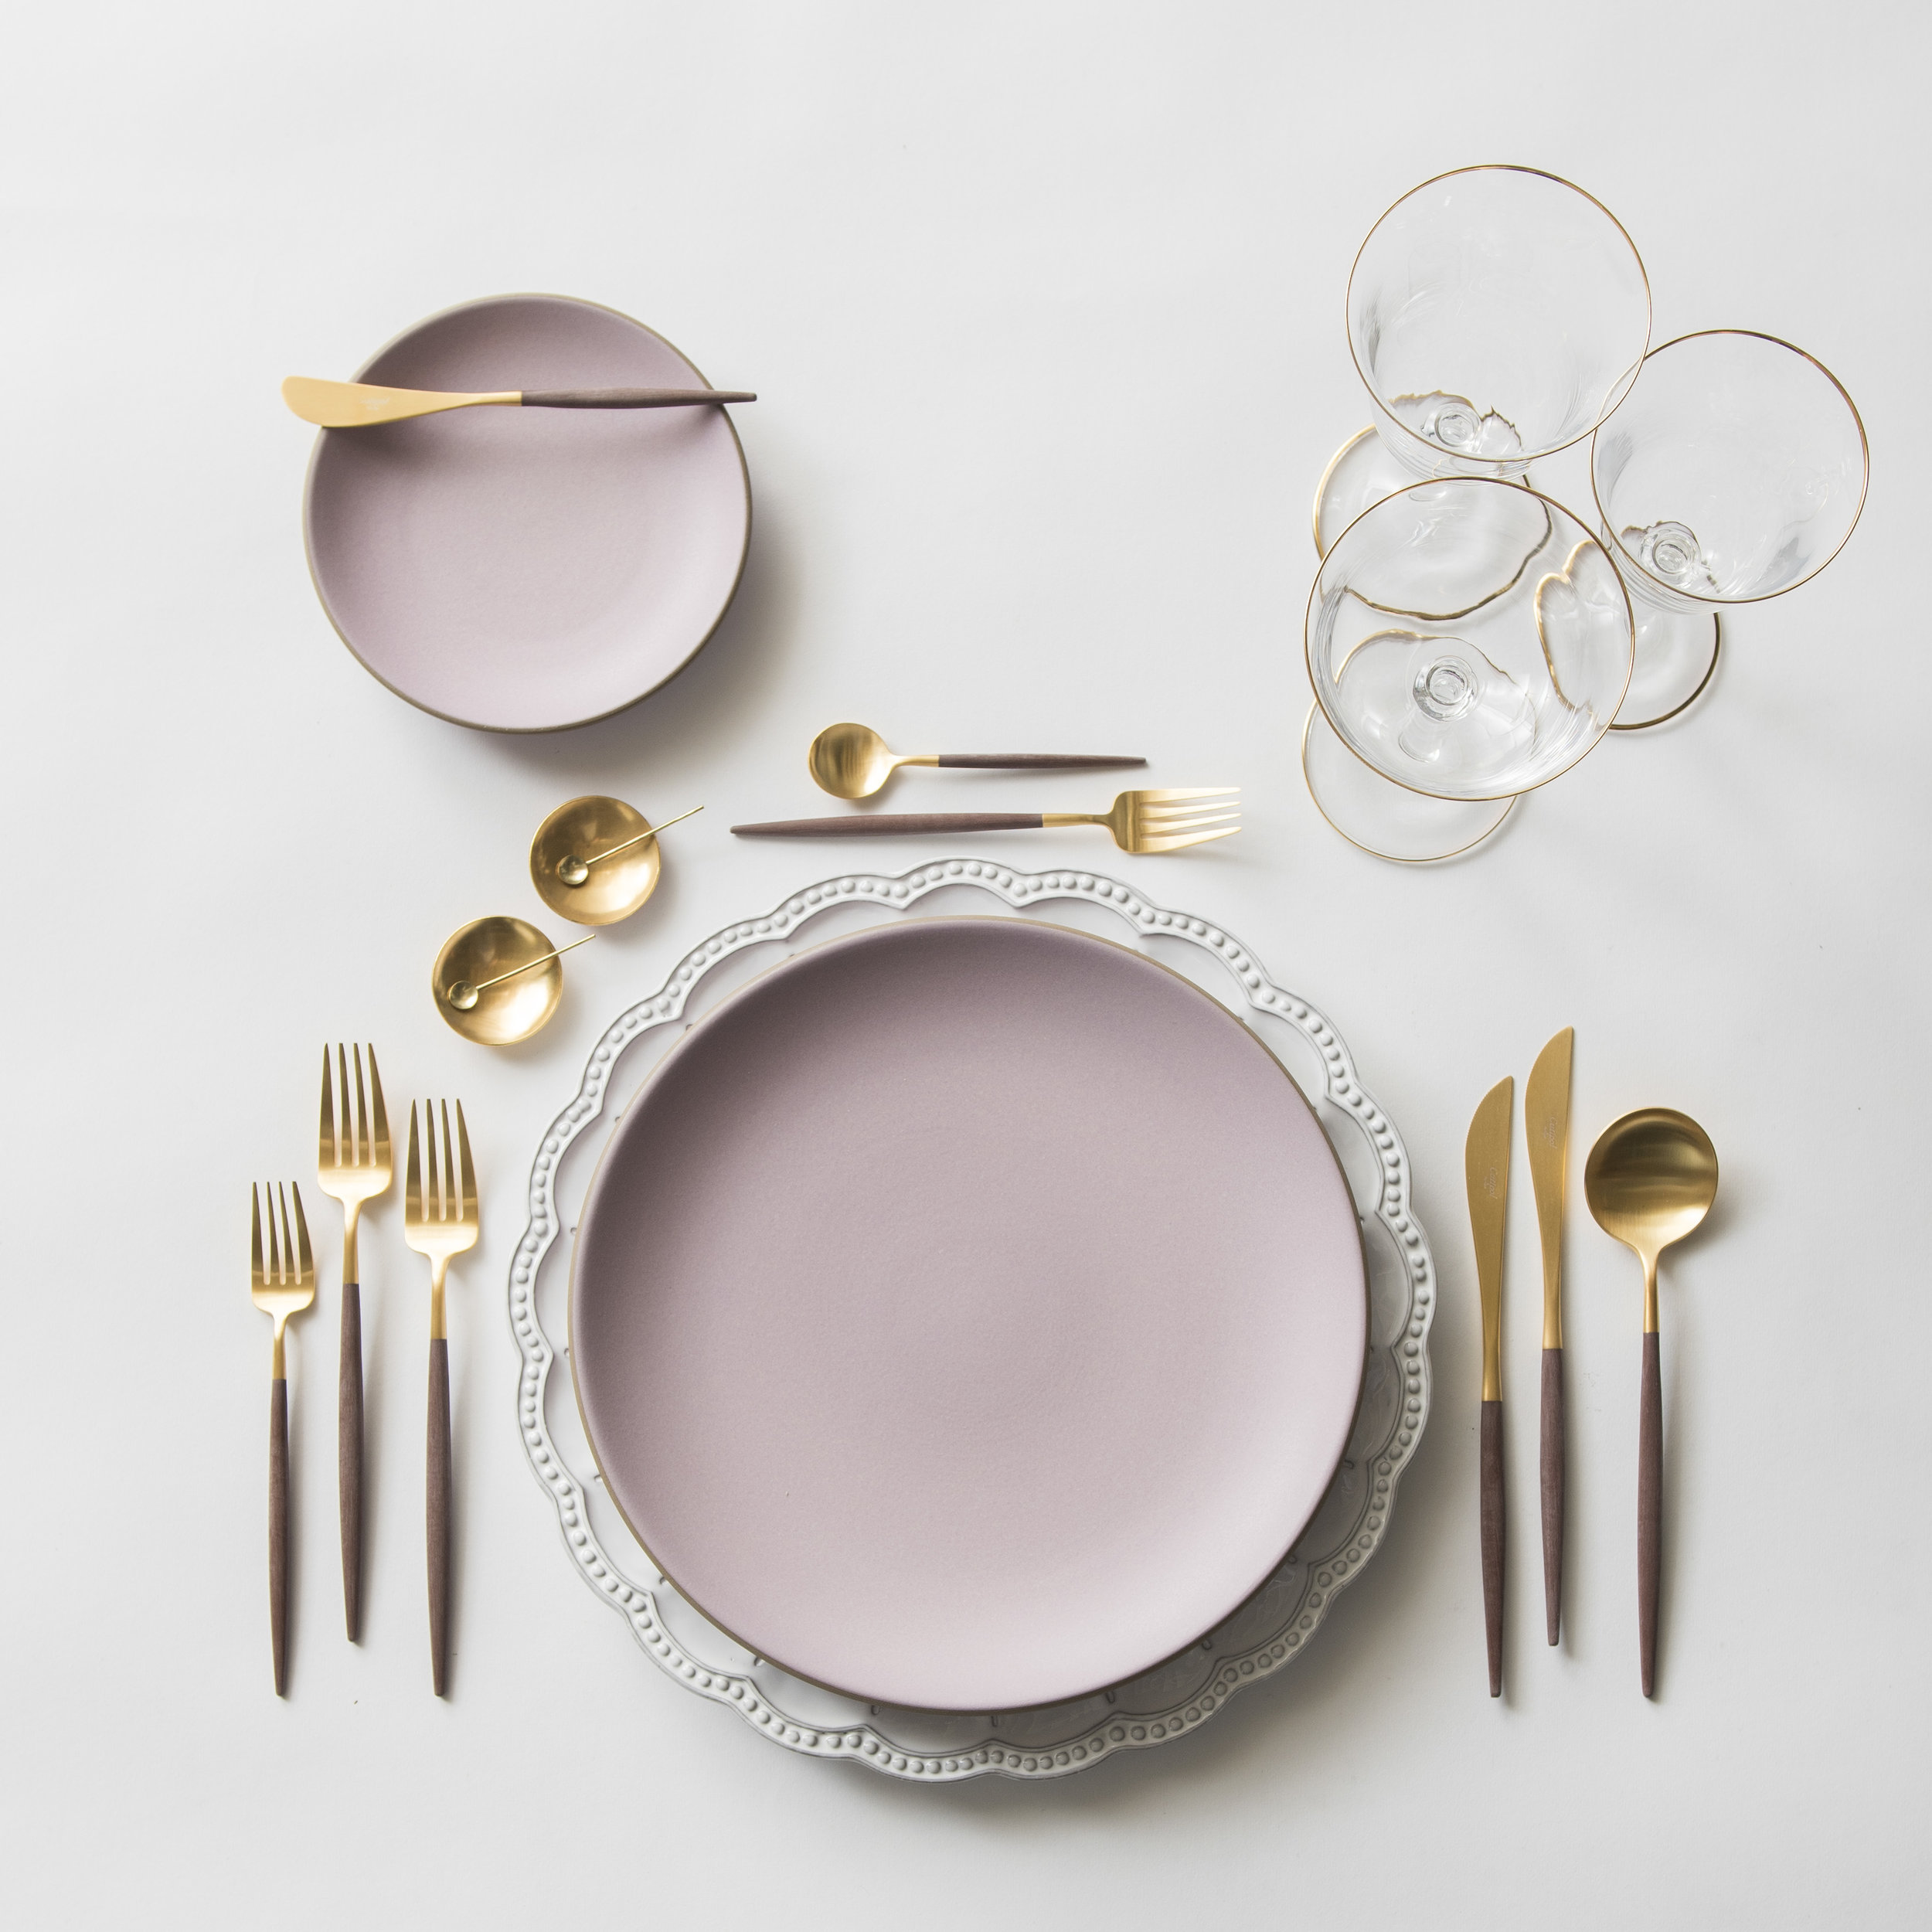 RENT: Signature Collection Chargers + Custom Heath Ceramics in Wildflower + Goa Flatware in Brushed 24k Gold/Wood + Chloe 24k Gold Rimmed Stemware + 14k Gold Salt Cellars + Tiny Gold Spoons  SHOP: Goa Flatware in Brushed 24k Gold/Wood + Chloe 24k Gold Rimmed Stemware + 14k Gold Salt Cellars + Tiny Gold Spoons